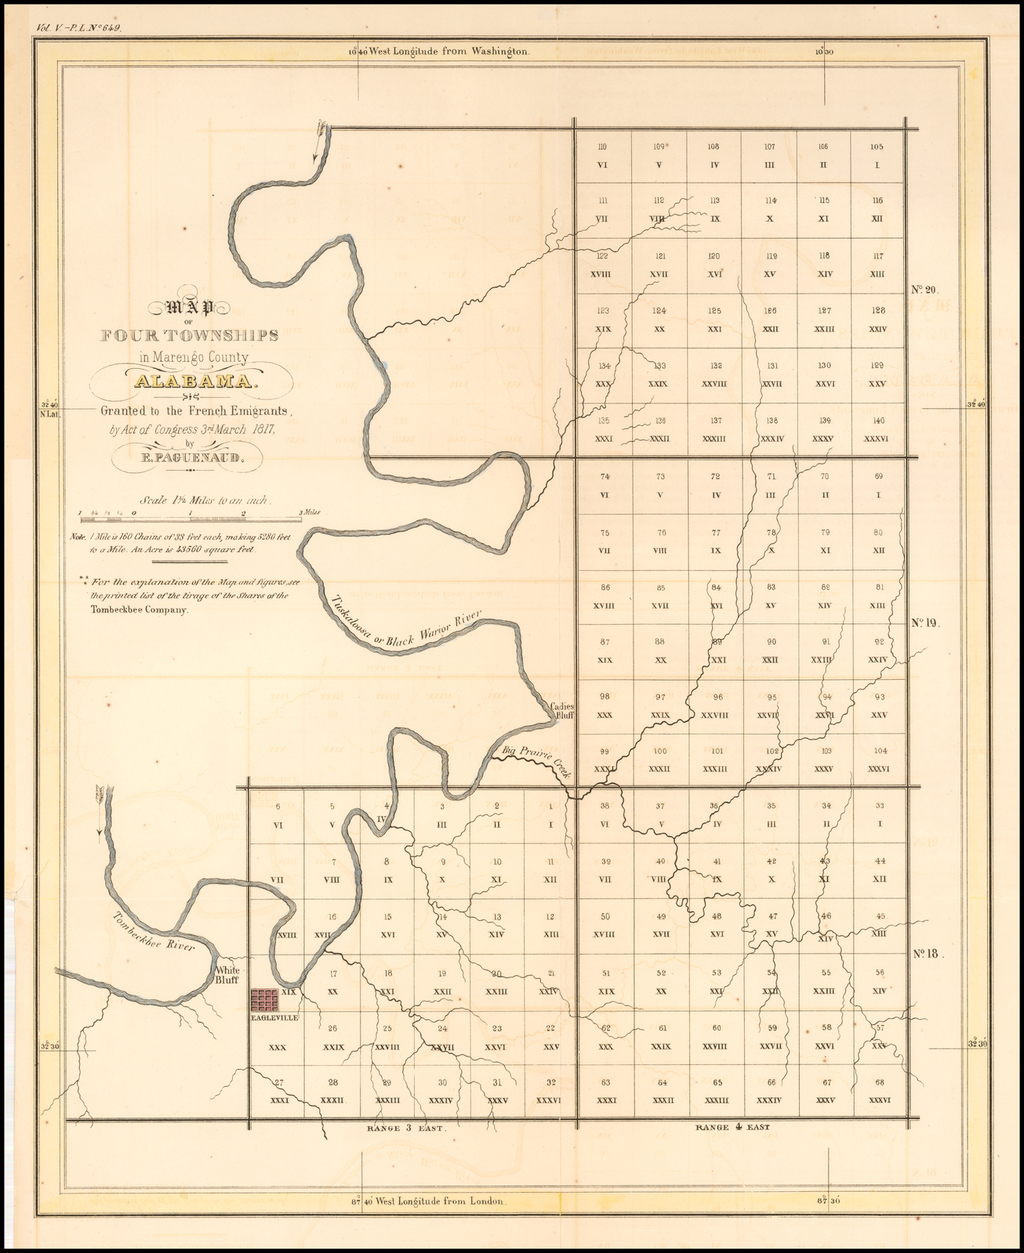 Map of Four Townships in Marengo County Alabama;  Granted to French Emigrants by Acto of congress 3rd March 1817.  By E.  By E. Paguenaud